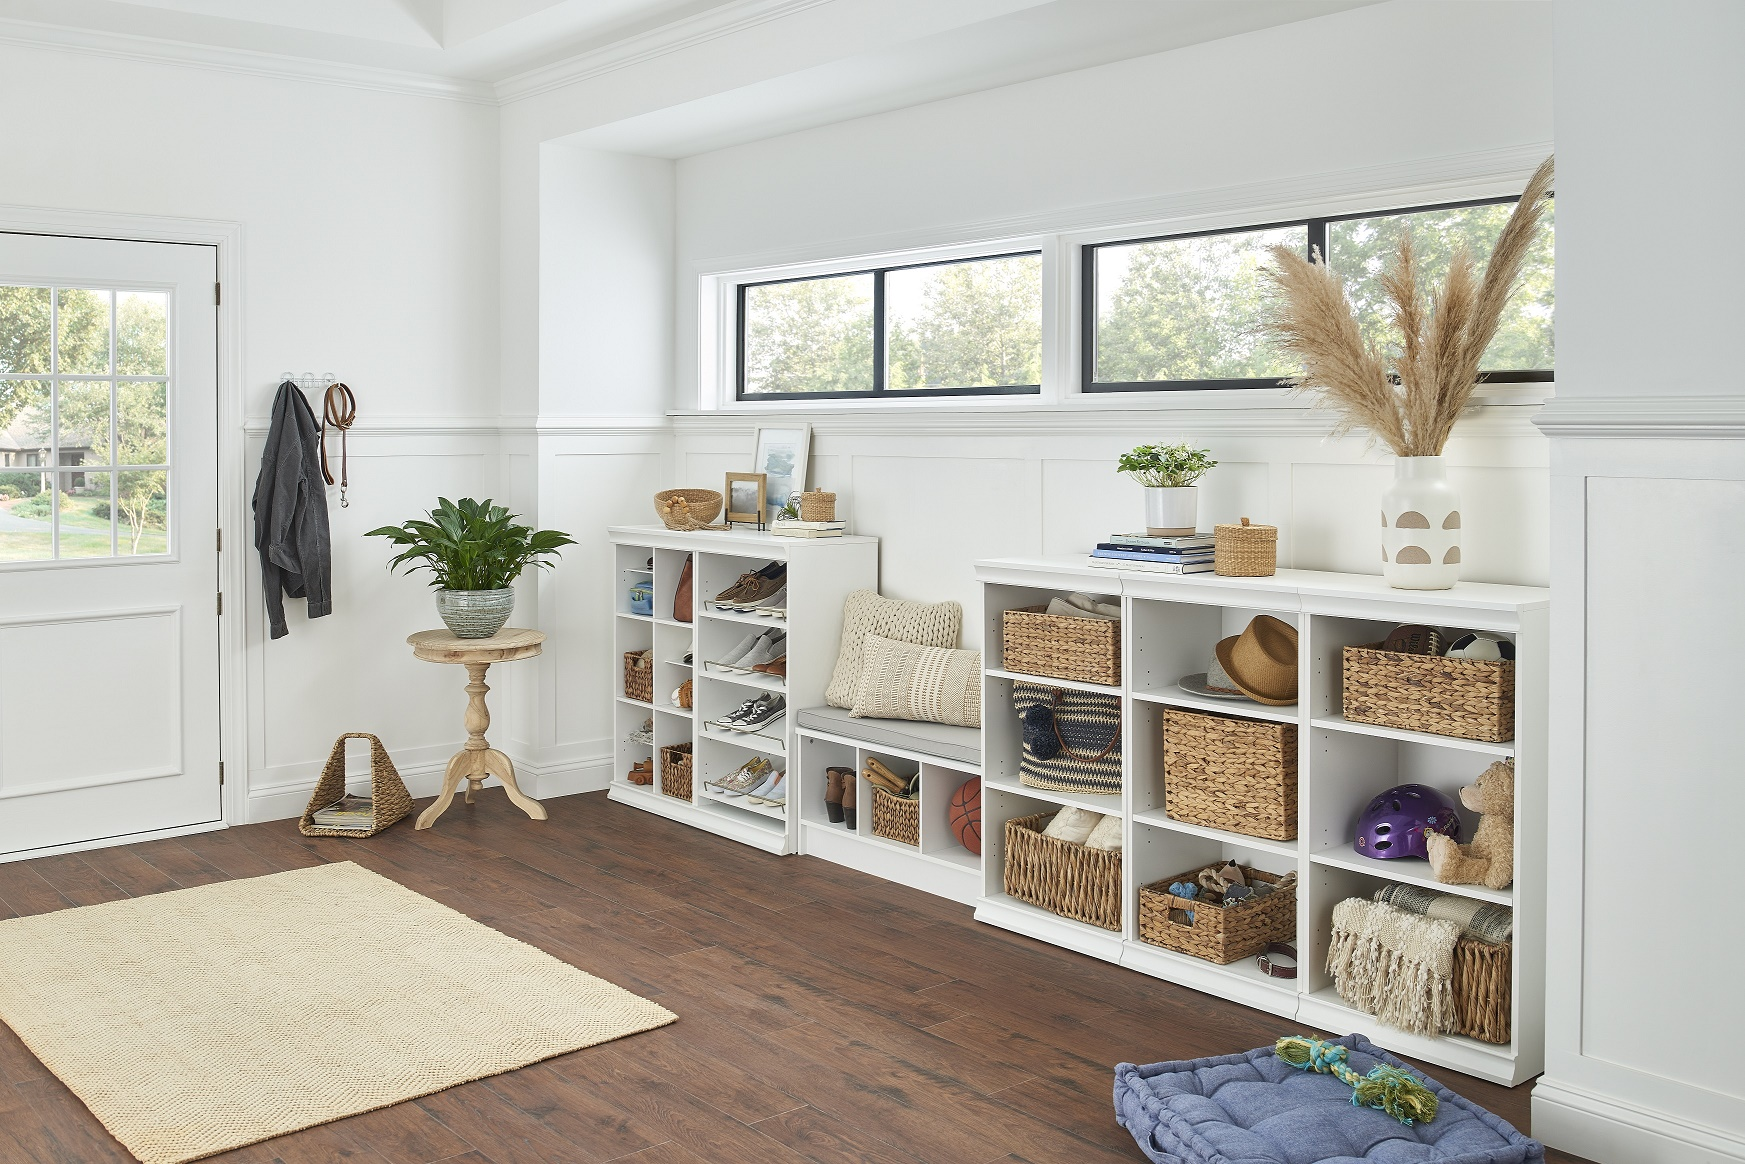 Indoor/Outdoor Living: How to Organize Your Mudroom and Decorate Your Patio